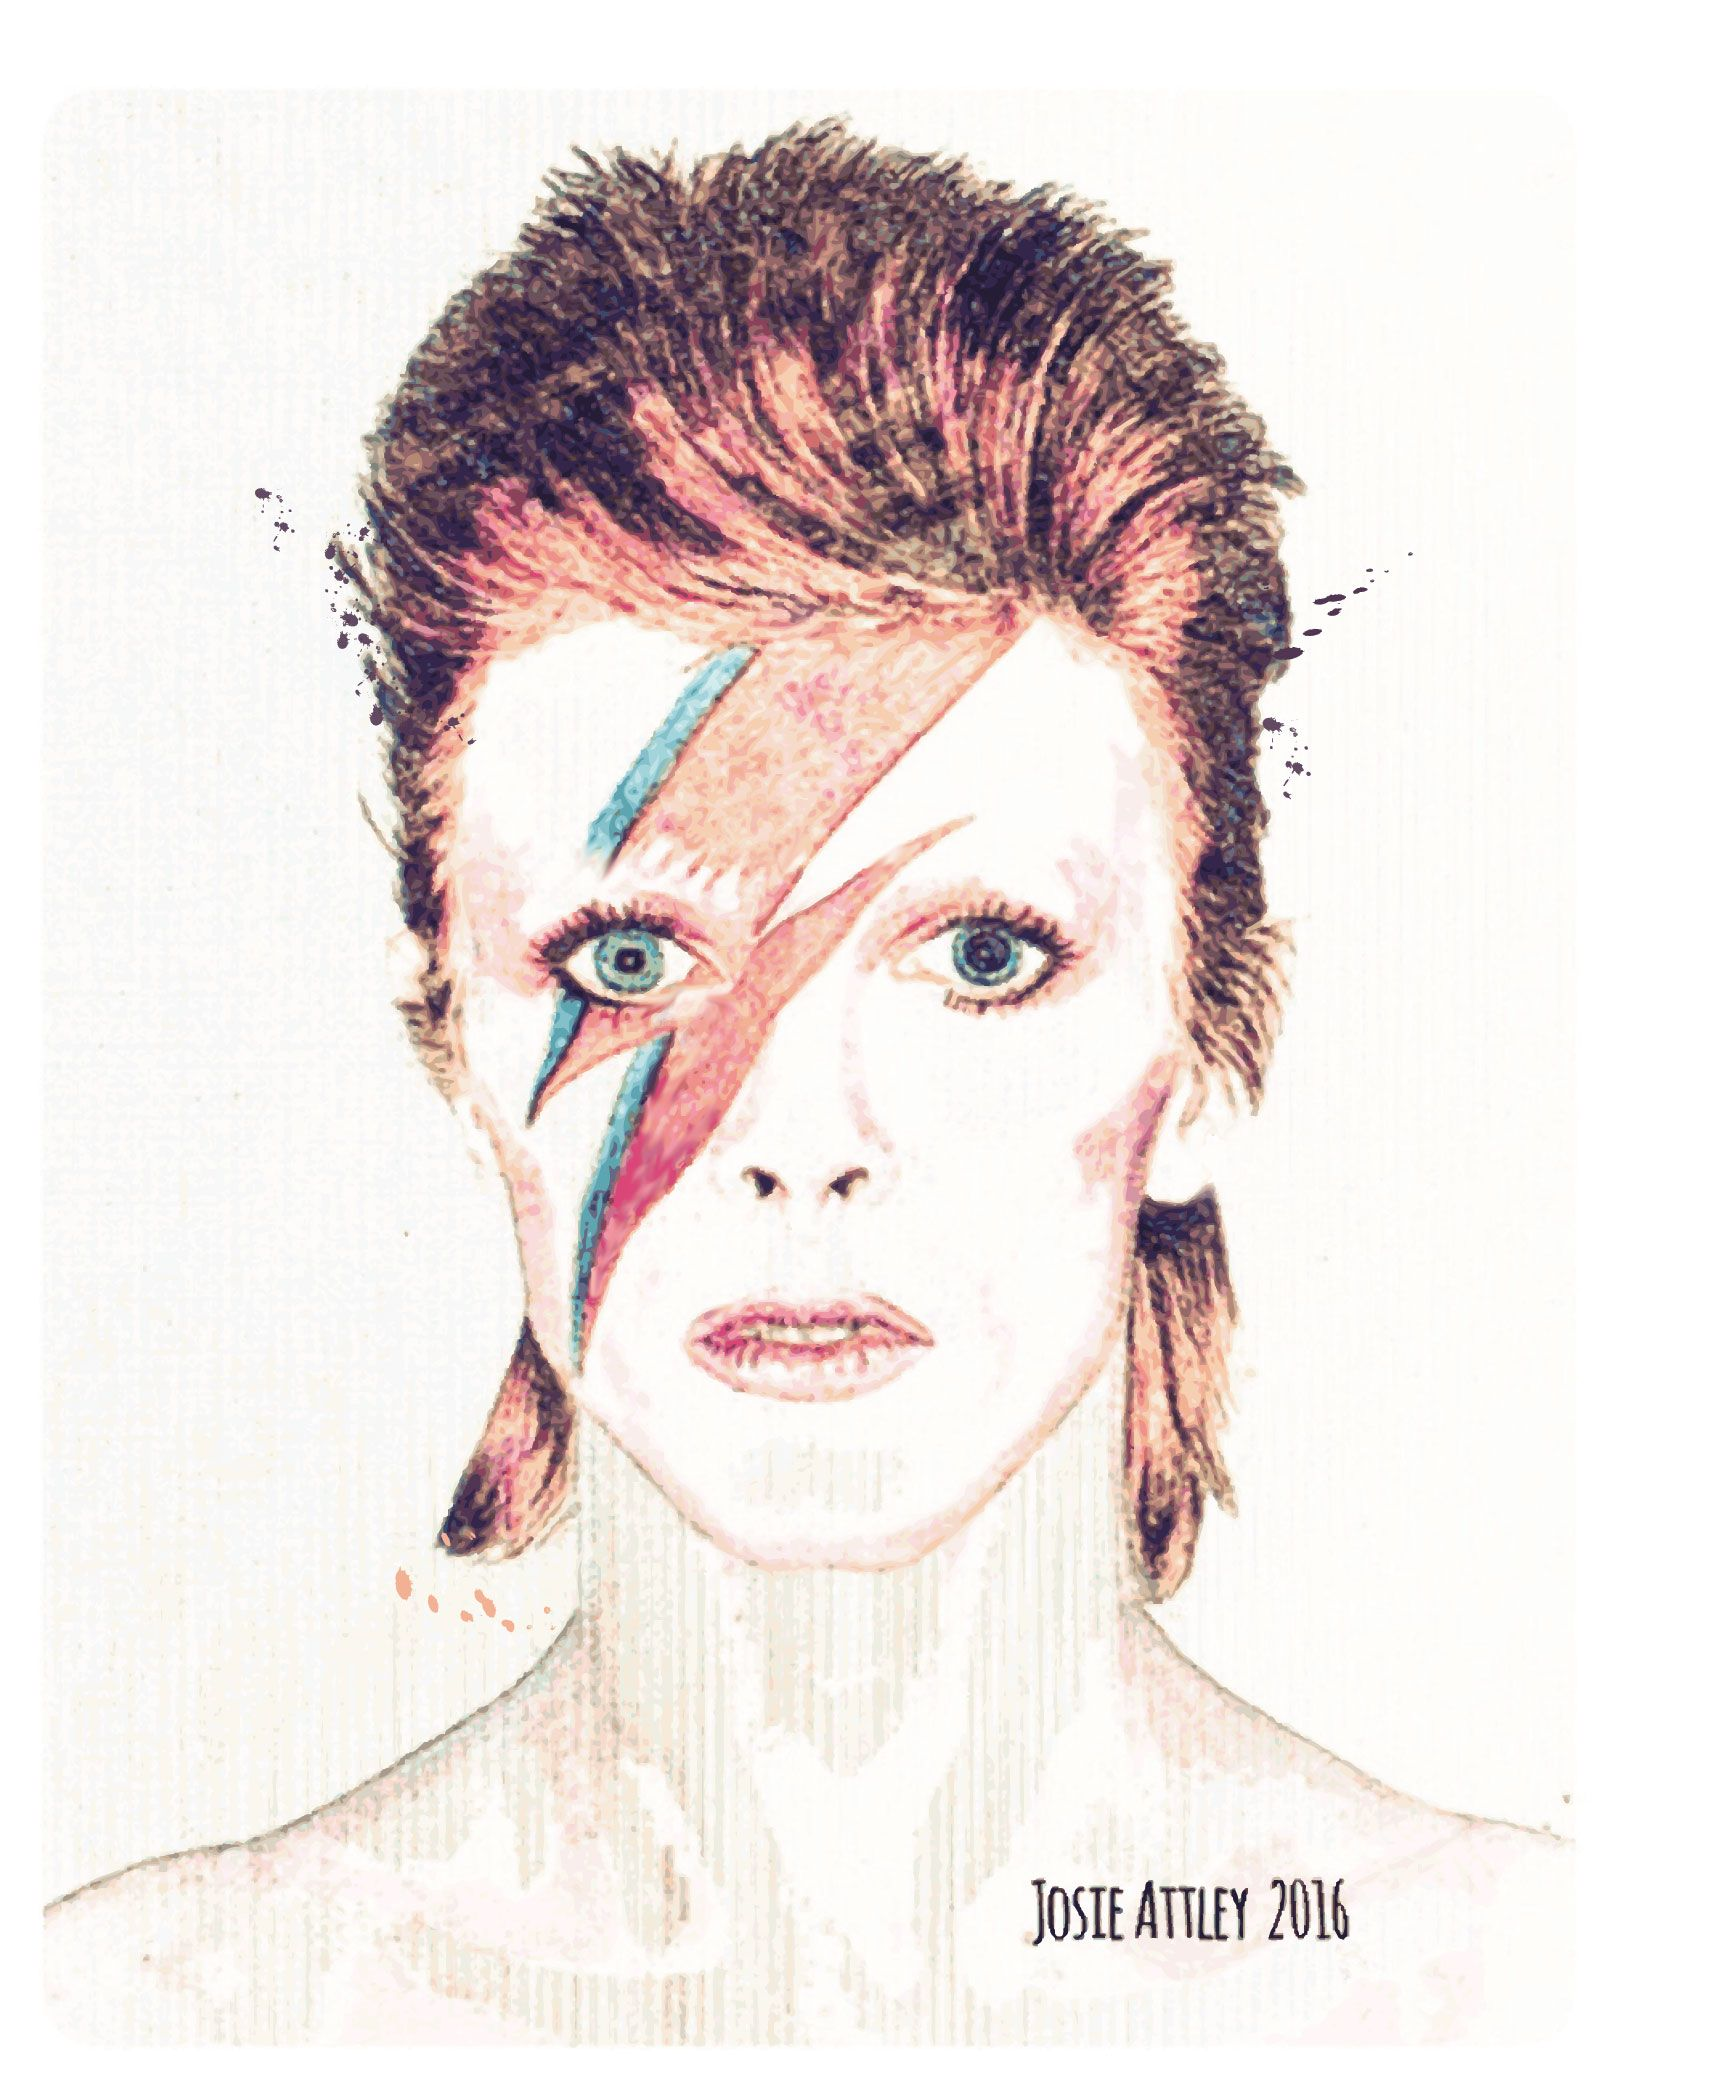 R.I.P David Bowie 1947-2016  Ashes to ashes  | One |  By Josie Attley 2016